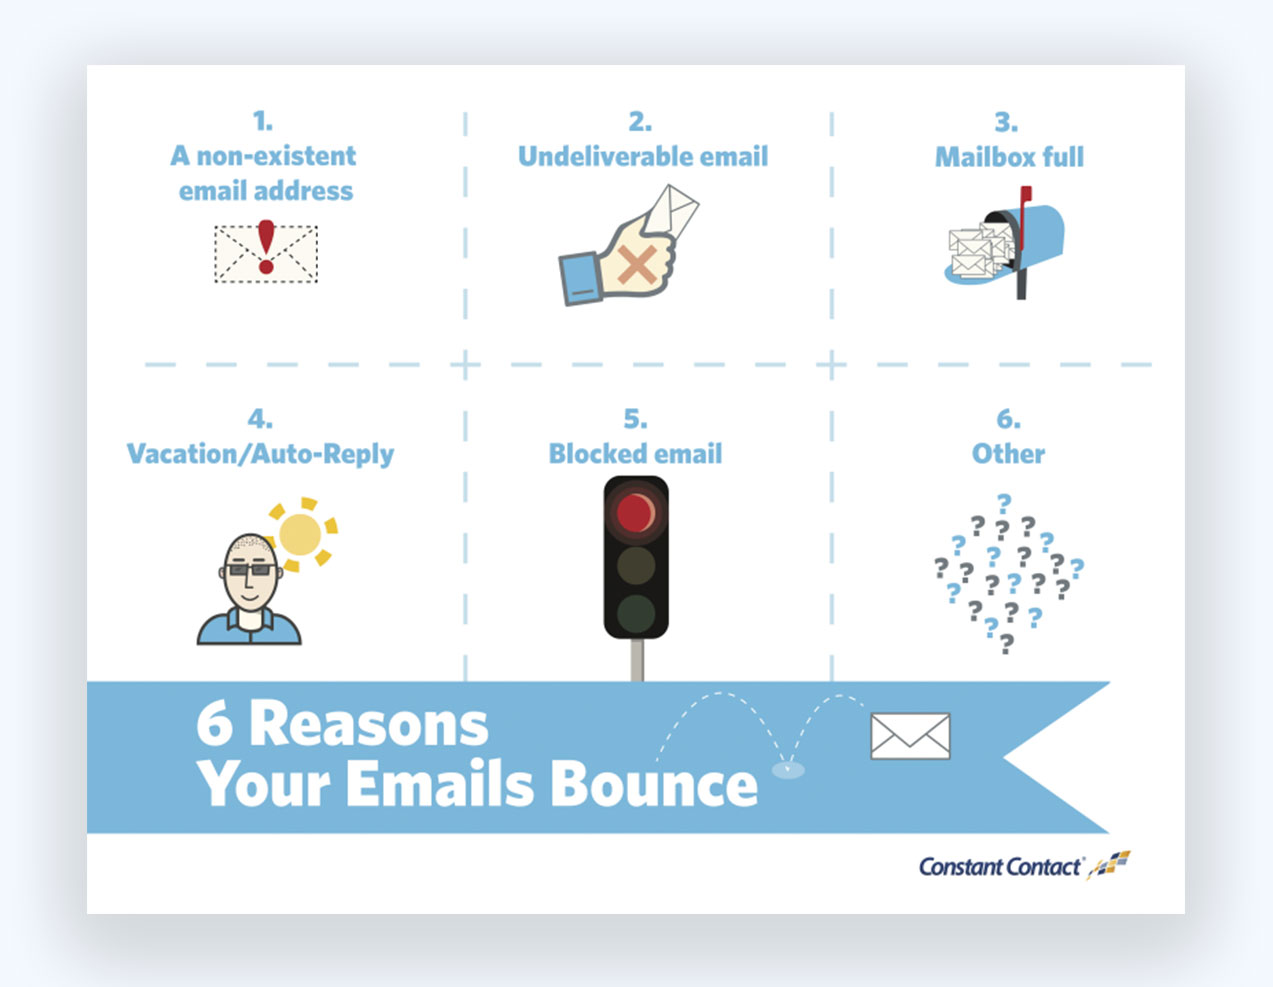 6 Reasons to Bounce Email